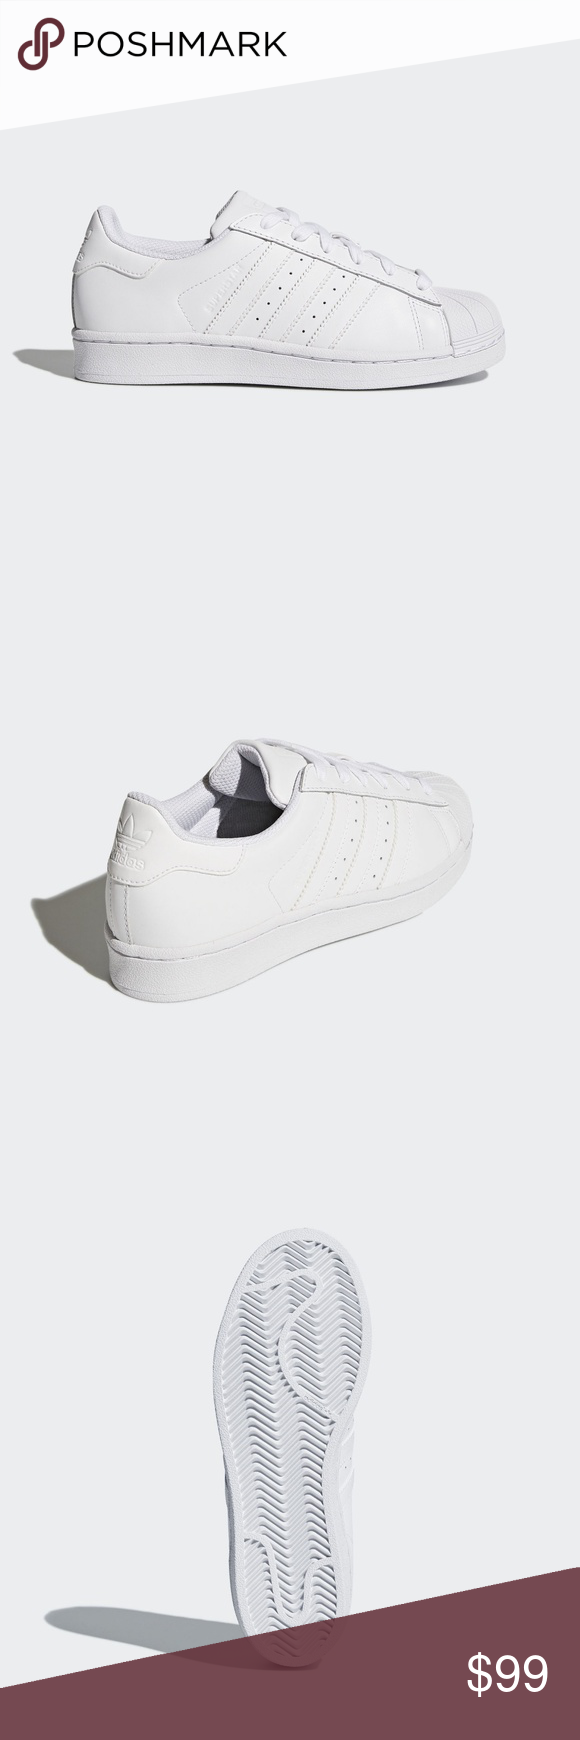 f79272563ee68d adidas Superstar Cloud White Shoes Kids  The adidas Originals Superstar  Foundation downsizes the classic for